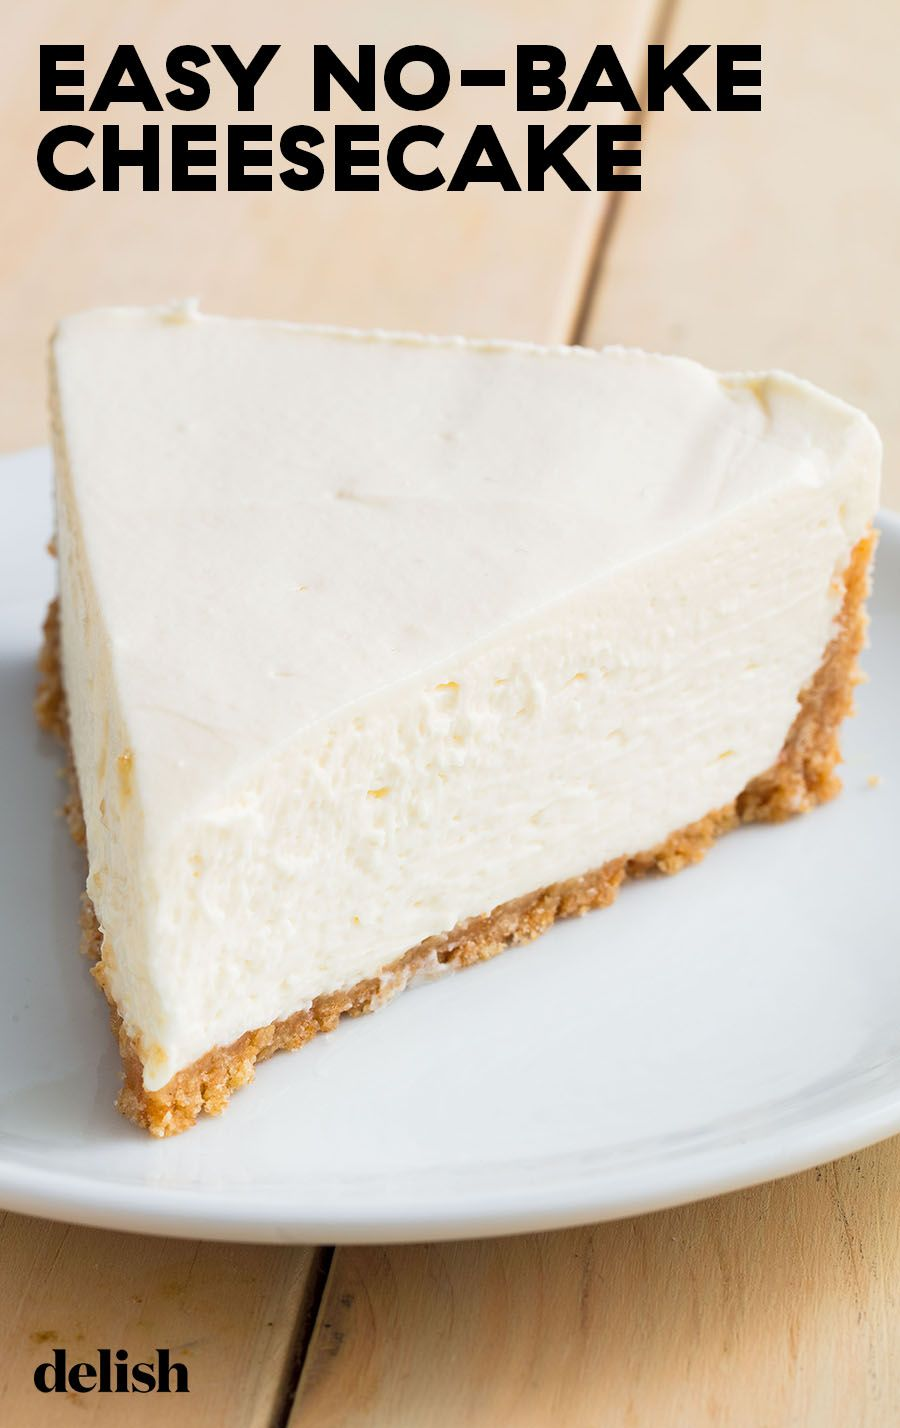 No Bake Cheesecake Is Perfect For When You Refuse To Turn On Your Oven Recipe Homemade Cheesecake Desserts Dessert Recipes Easy